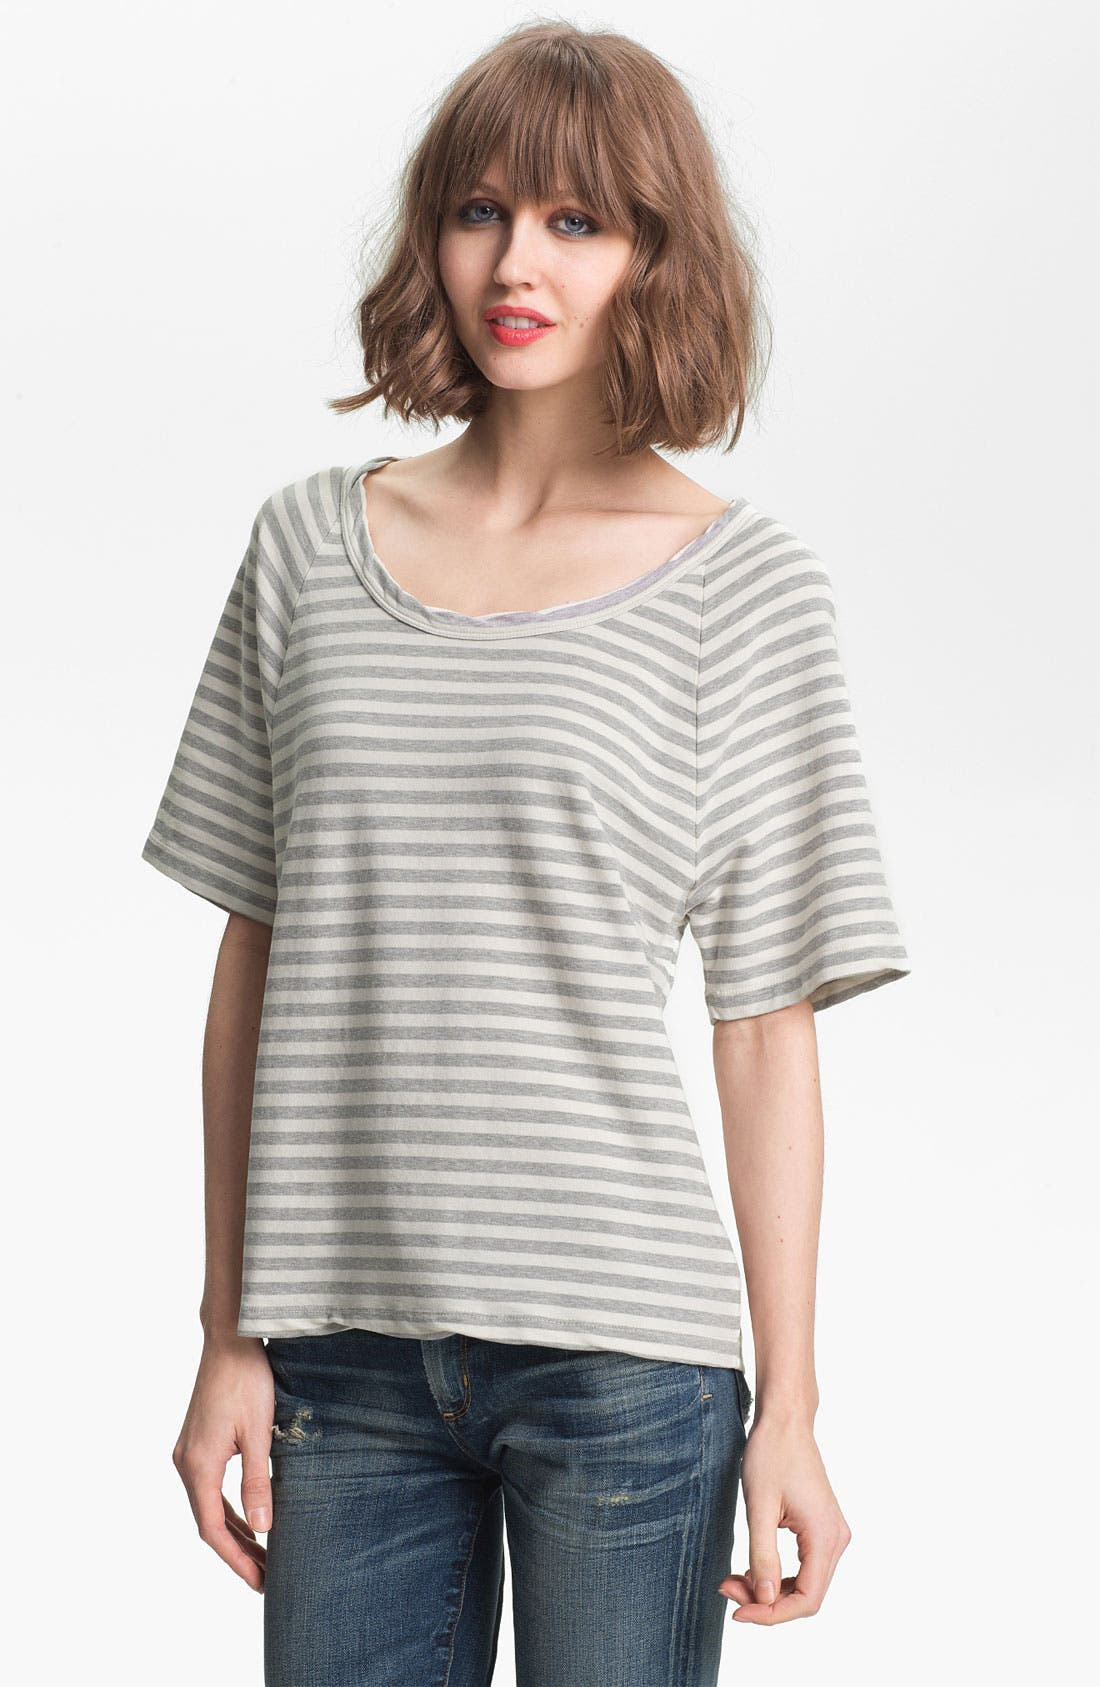 Alternate Image 1 Selected - James Perse Stripe Short Sleeve Sweatshirt